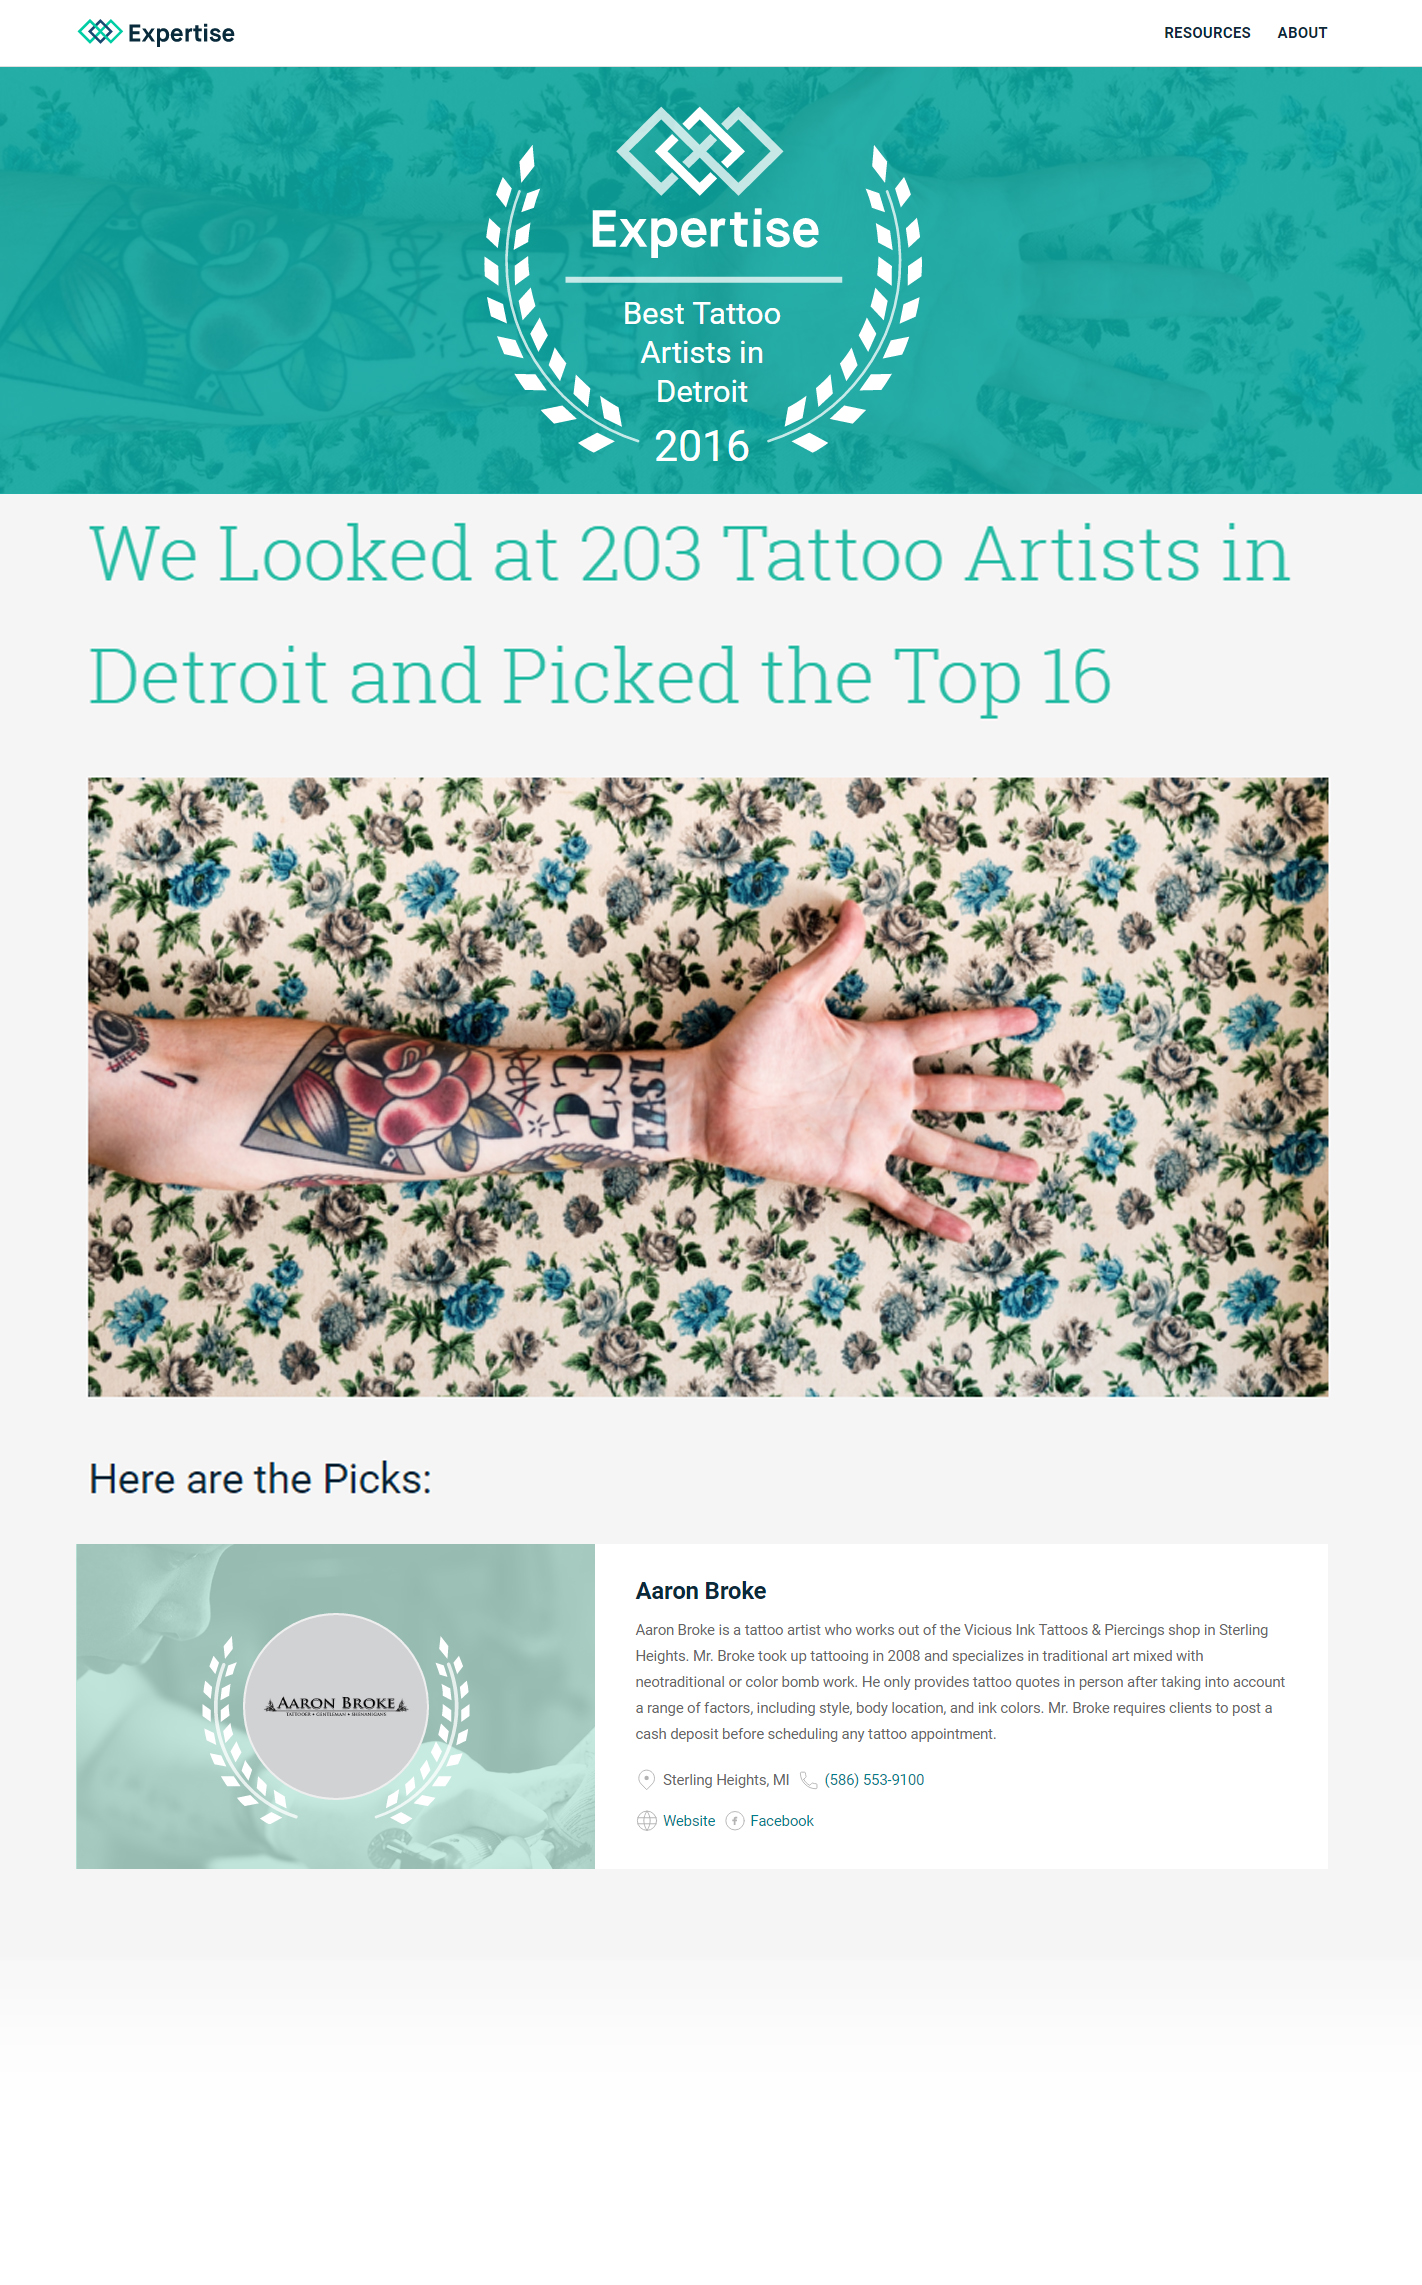 Aaron Broke – Top Tattoo Artist in Detroit | Tattoos by Aaron Broke